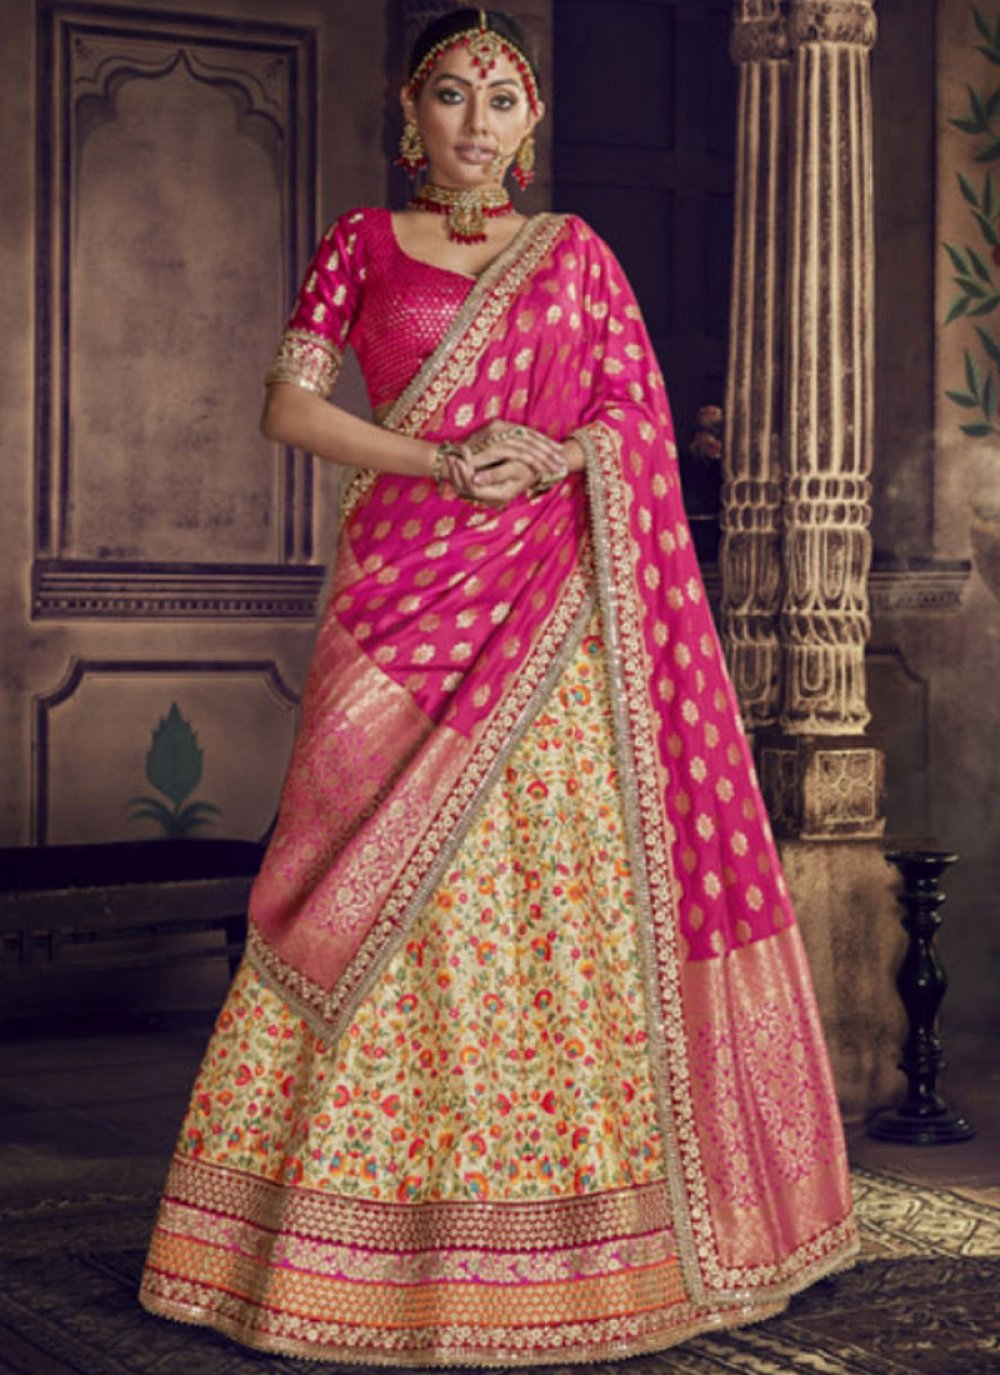 Hot Pink and Yellow Art Silk Zari Lehenga Choli